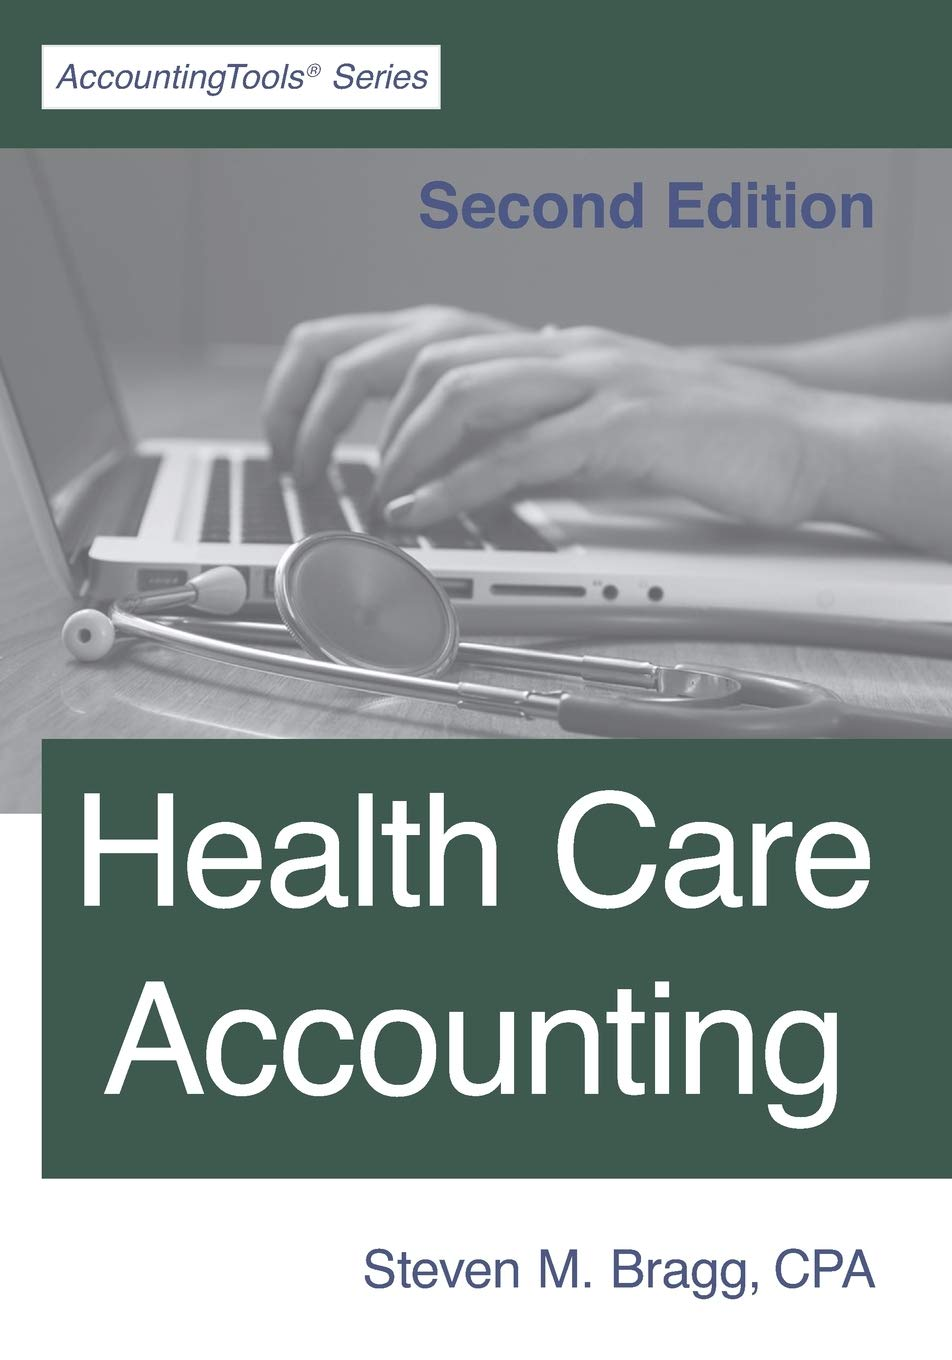 Health Care Accounting: Second Edition